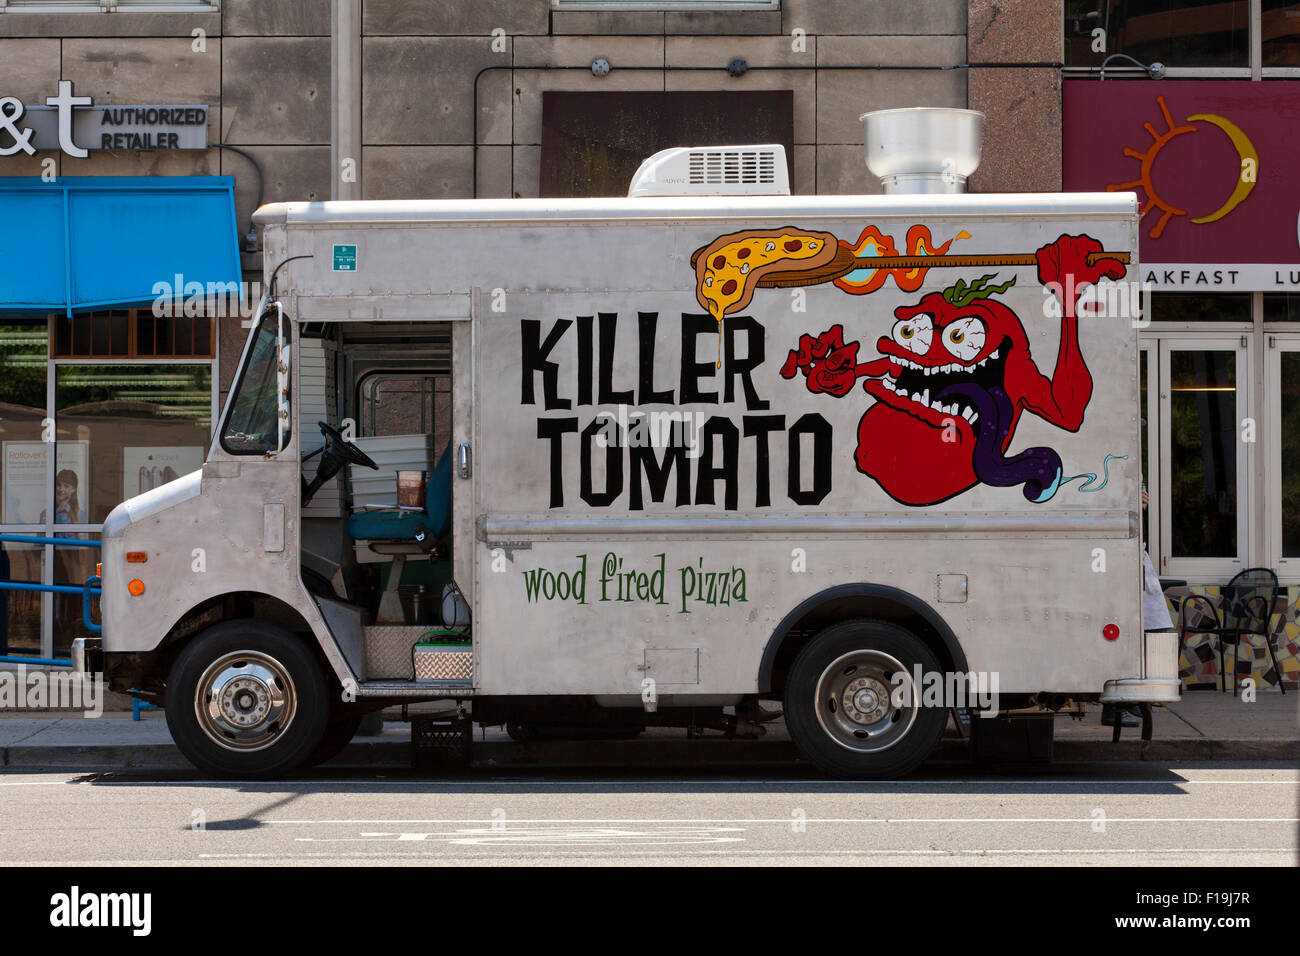 Pizza food truck - USA - Stock Image